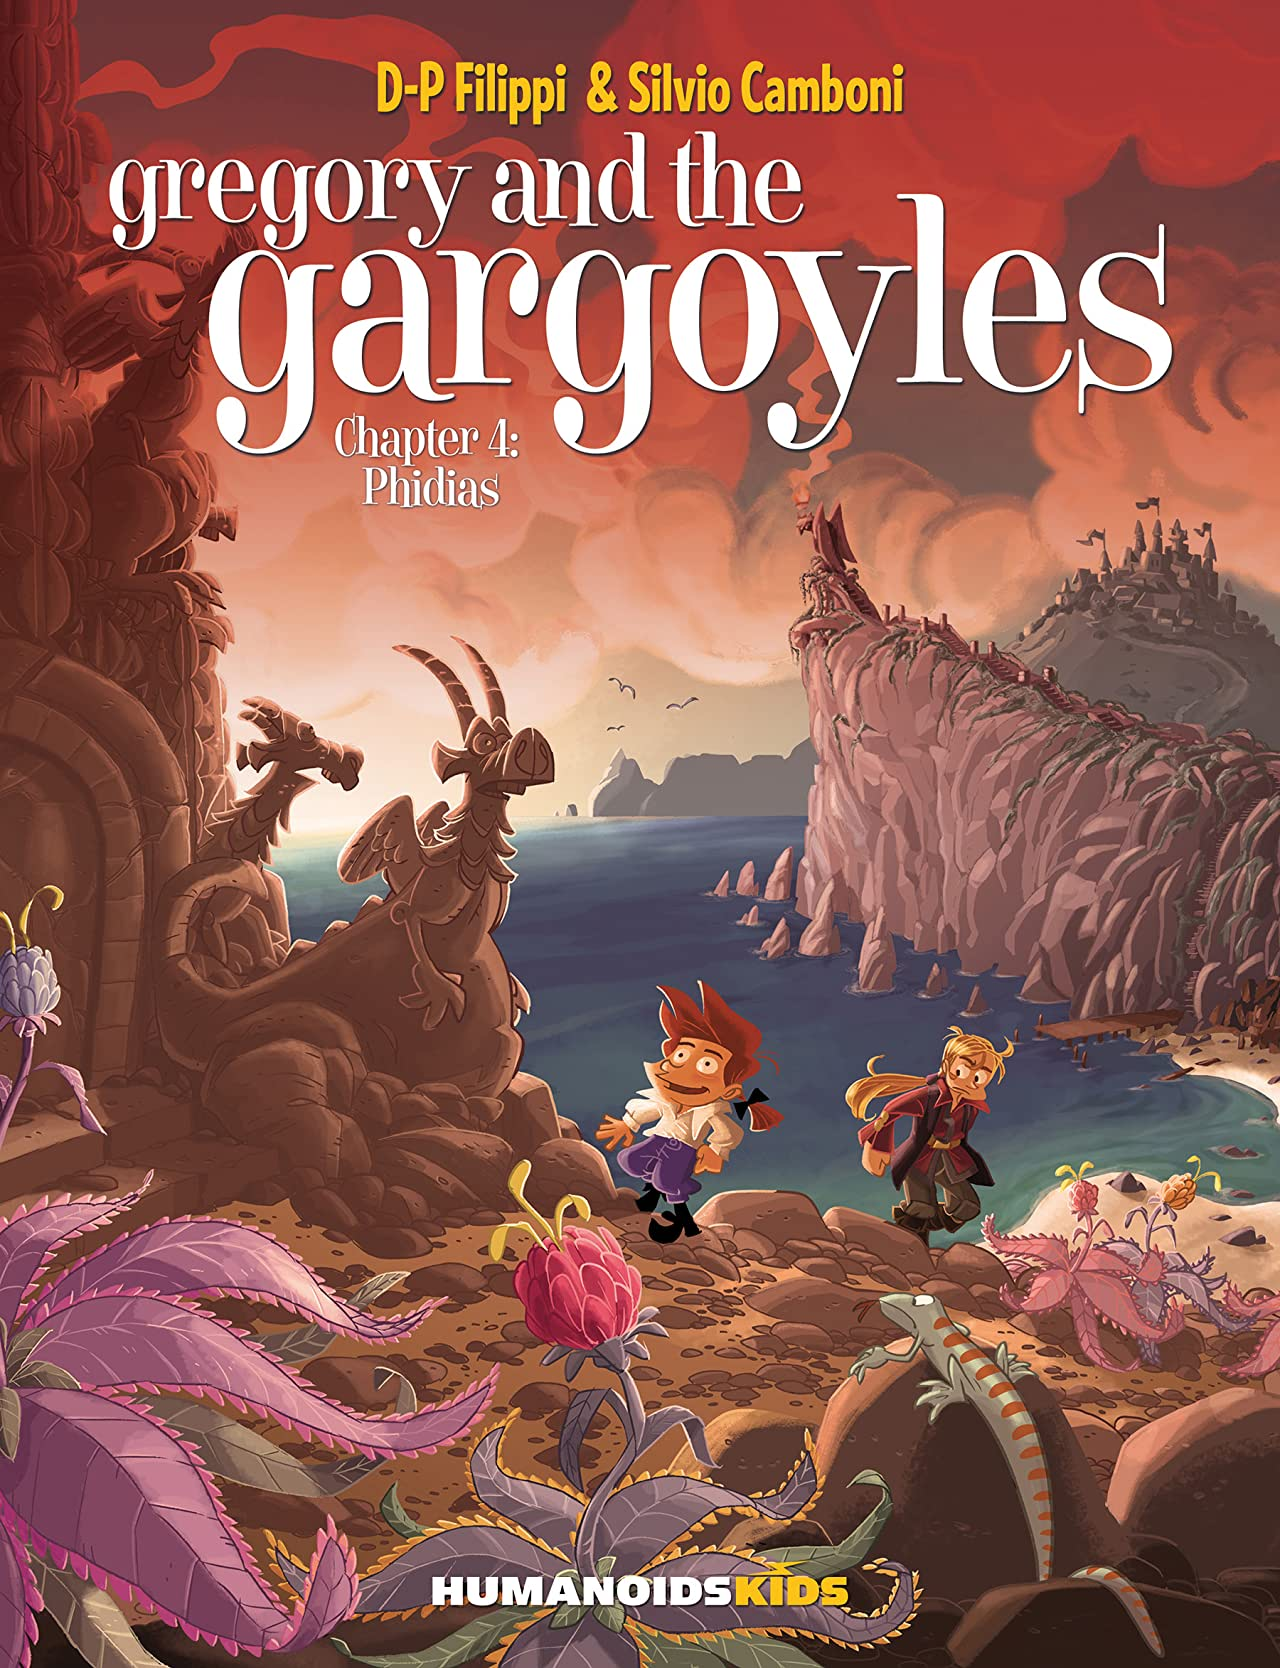 Gregory and the Gargoyles Vol. 4